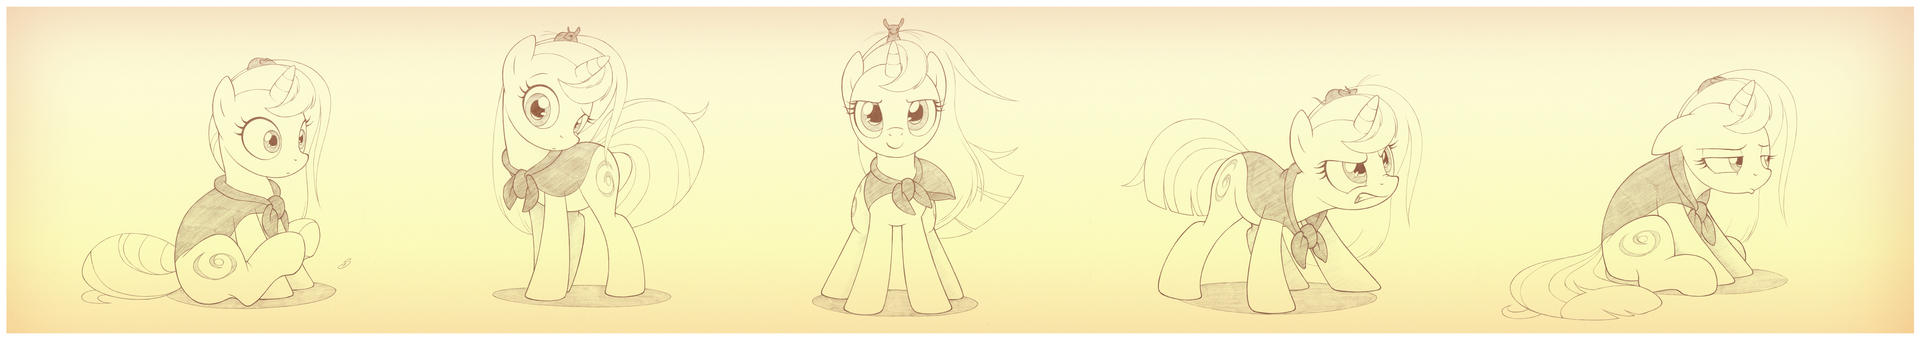 Eri Expressions 4 by sherwoodwhisper